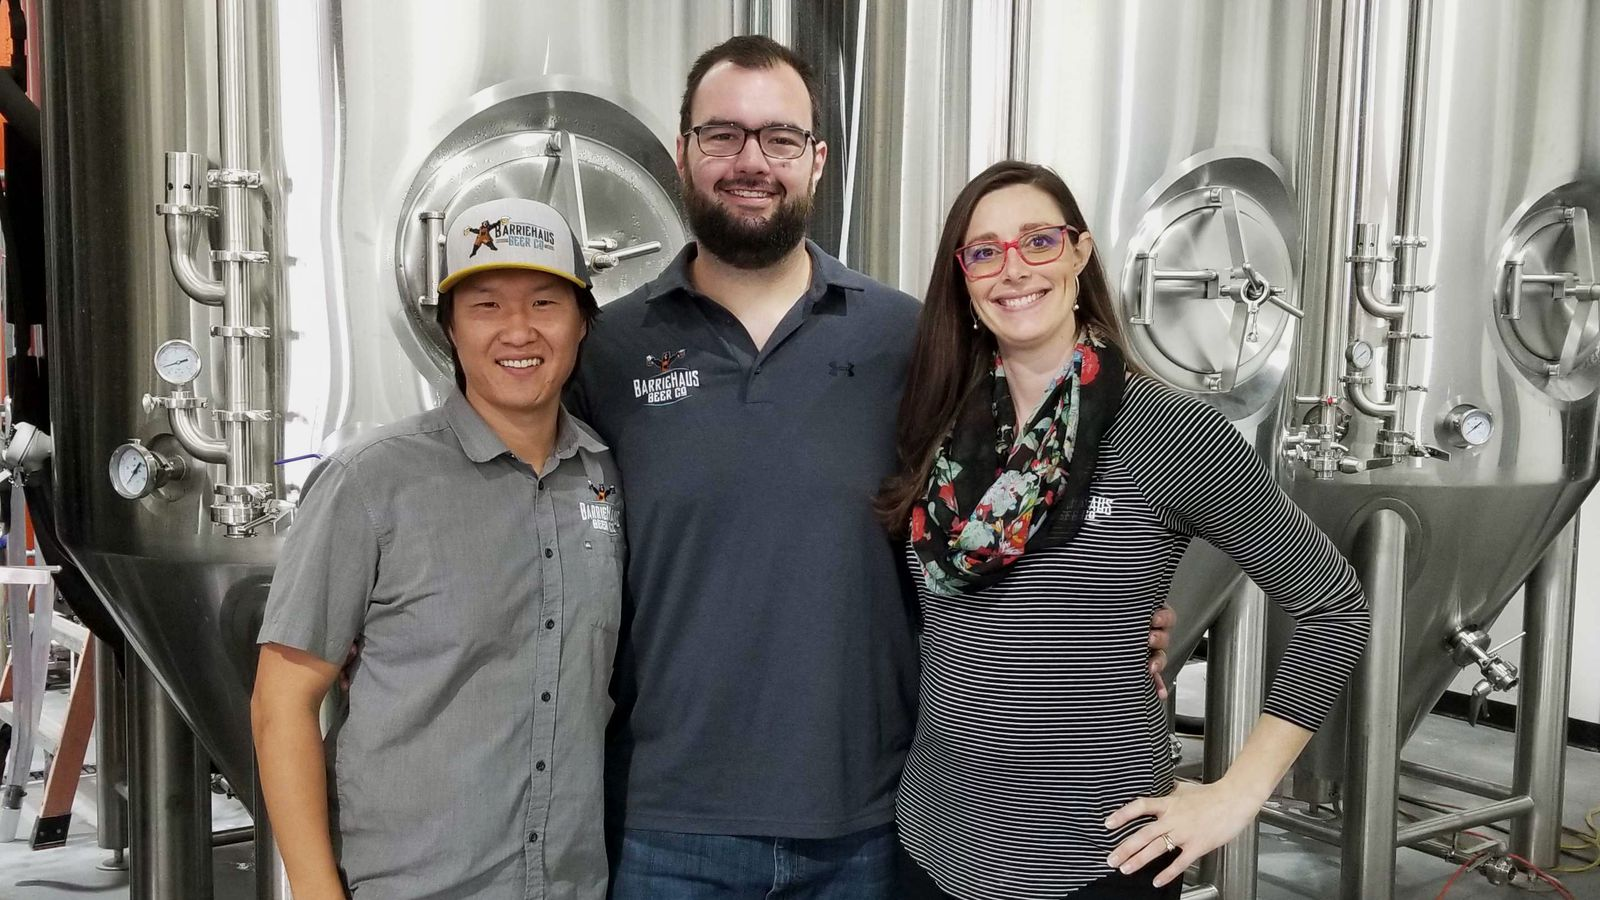 Lager-forward brewery BarrieHaus revives a family tradition in Ybor City